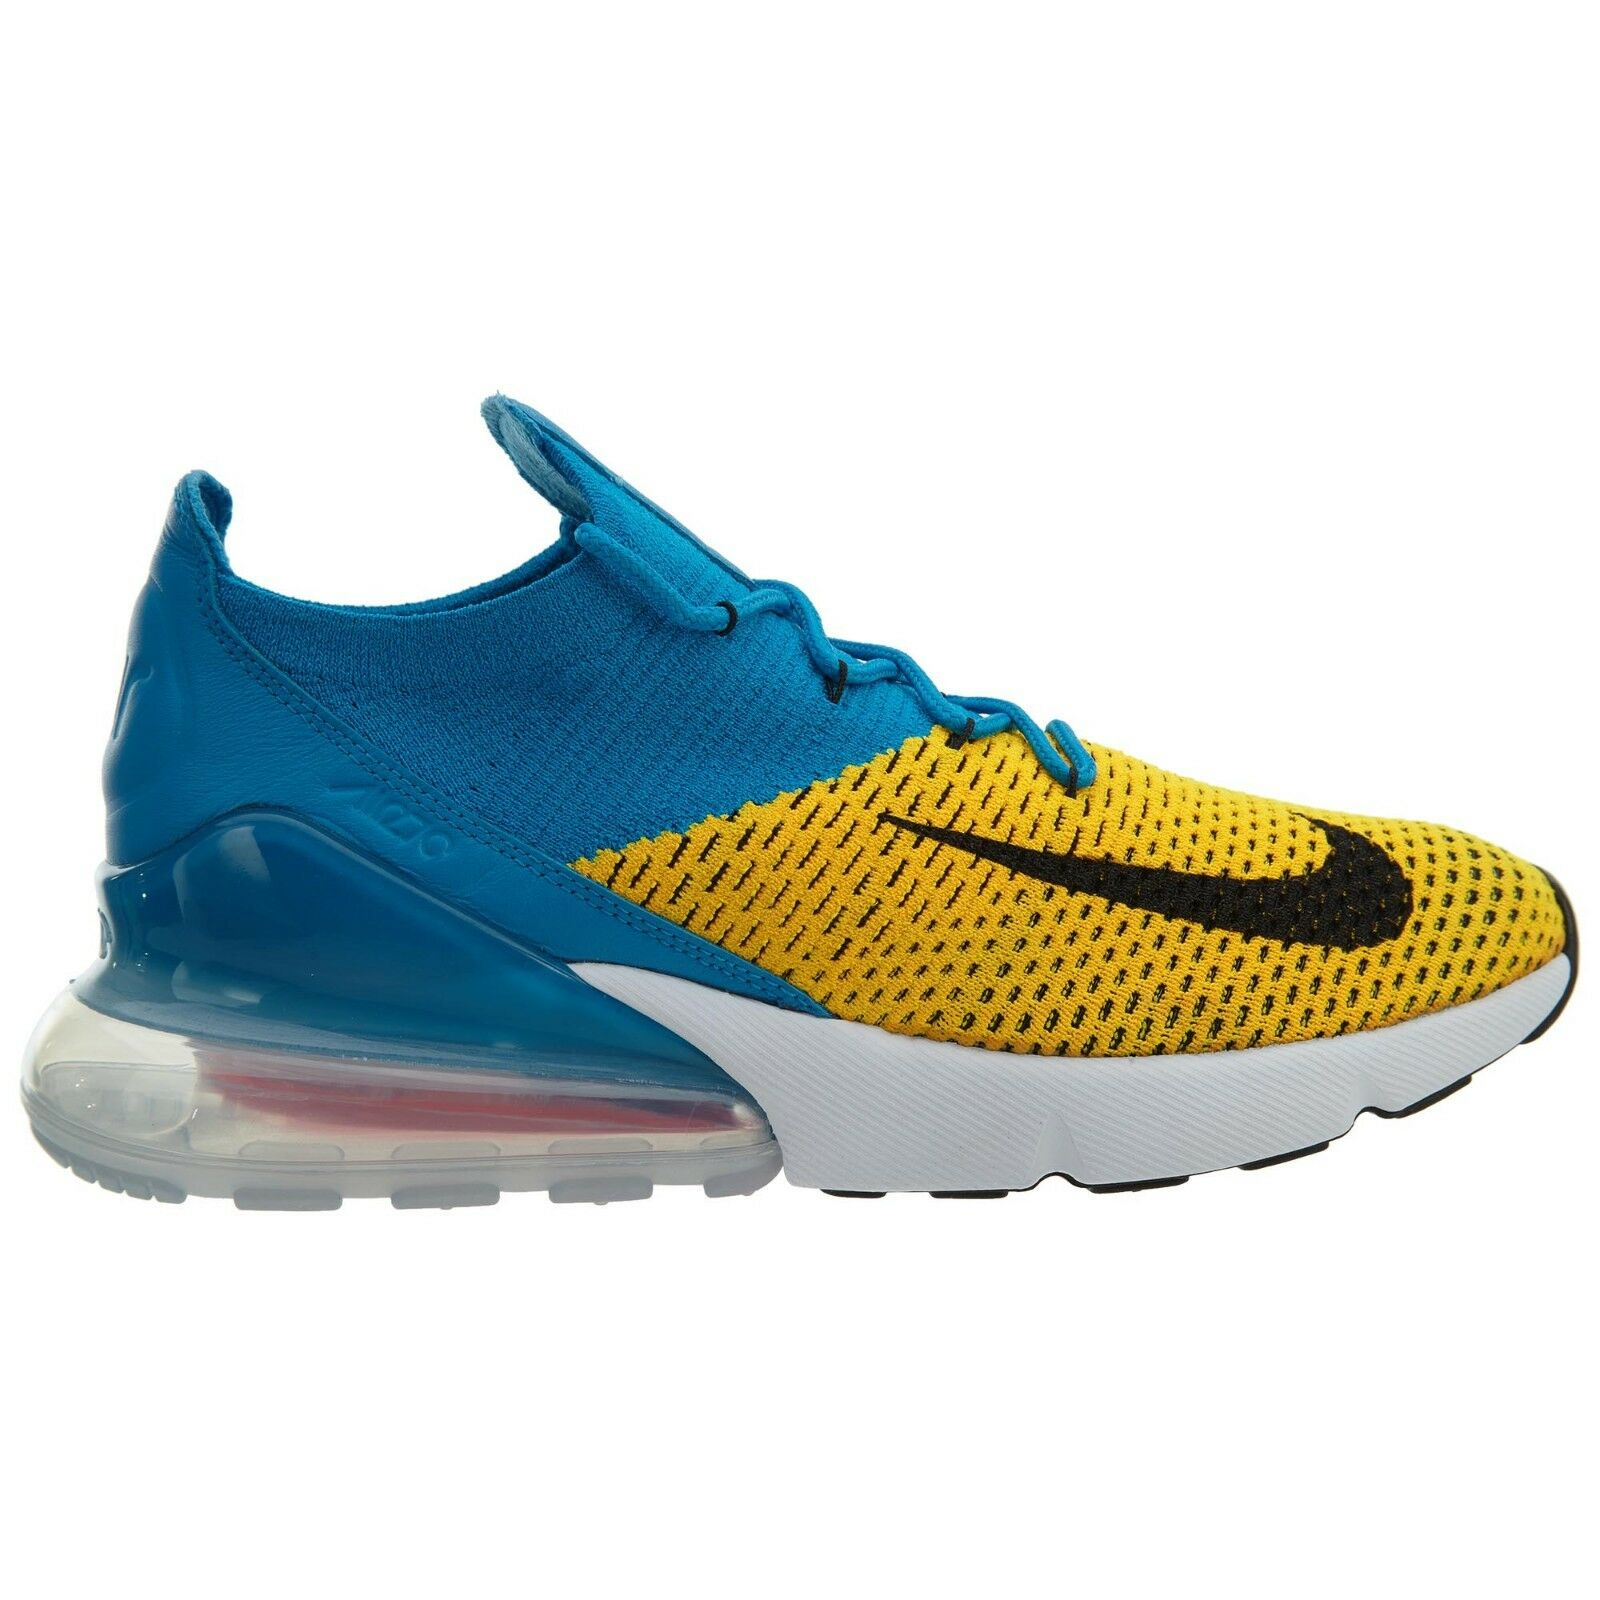 Nike Air Max 270 Flyknit Mens AO1023-800 Laser Orange Blue Orbit Shoes Comfortable Seasonal clearance sale